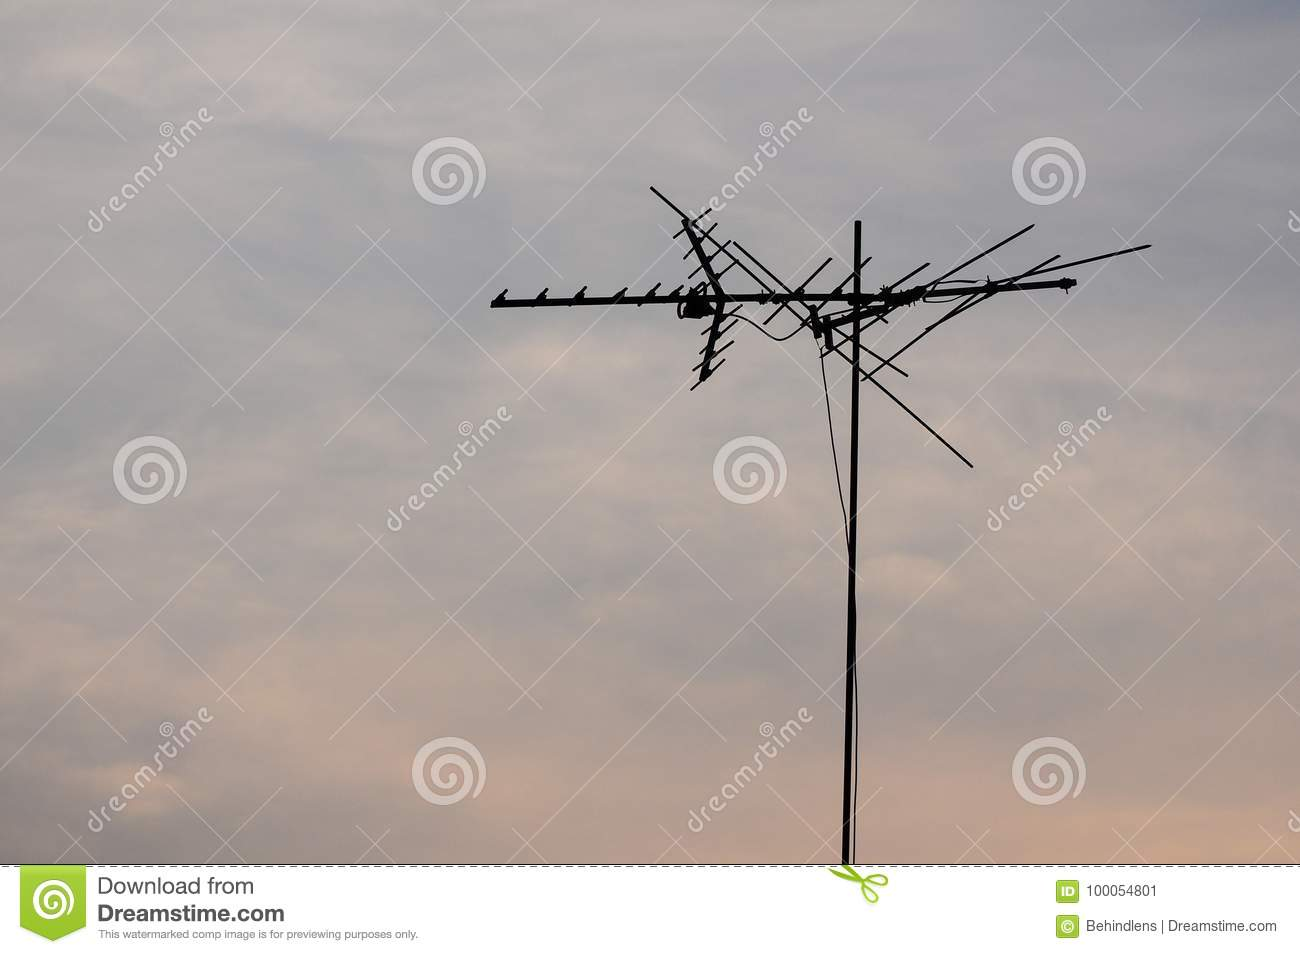 Telecommunication pole with sky at dawn.